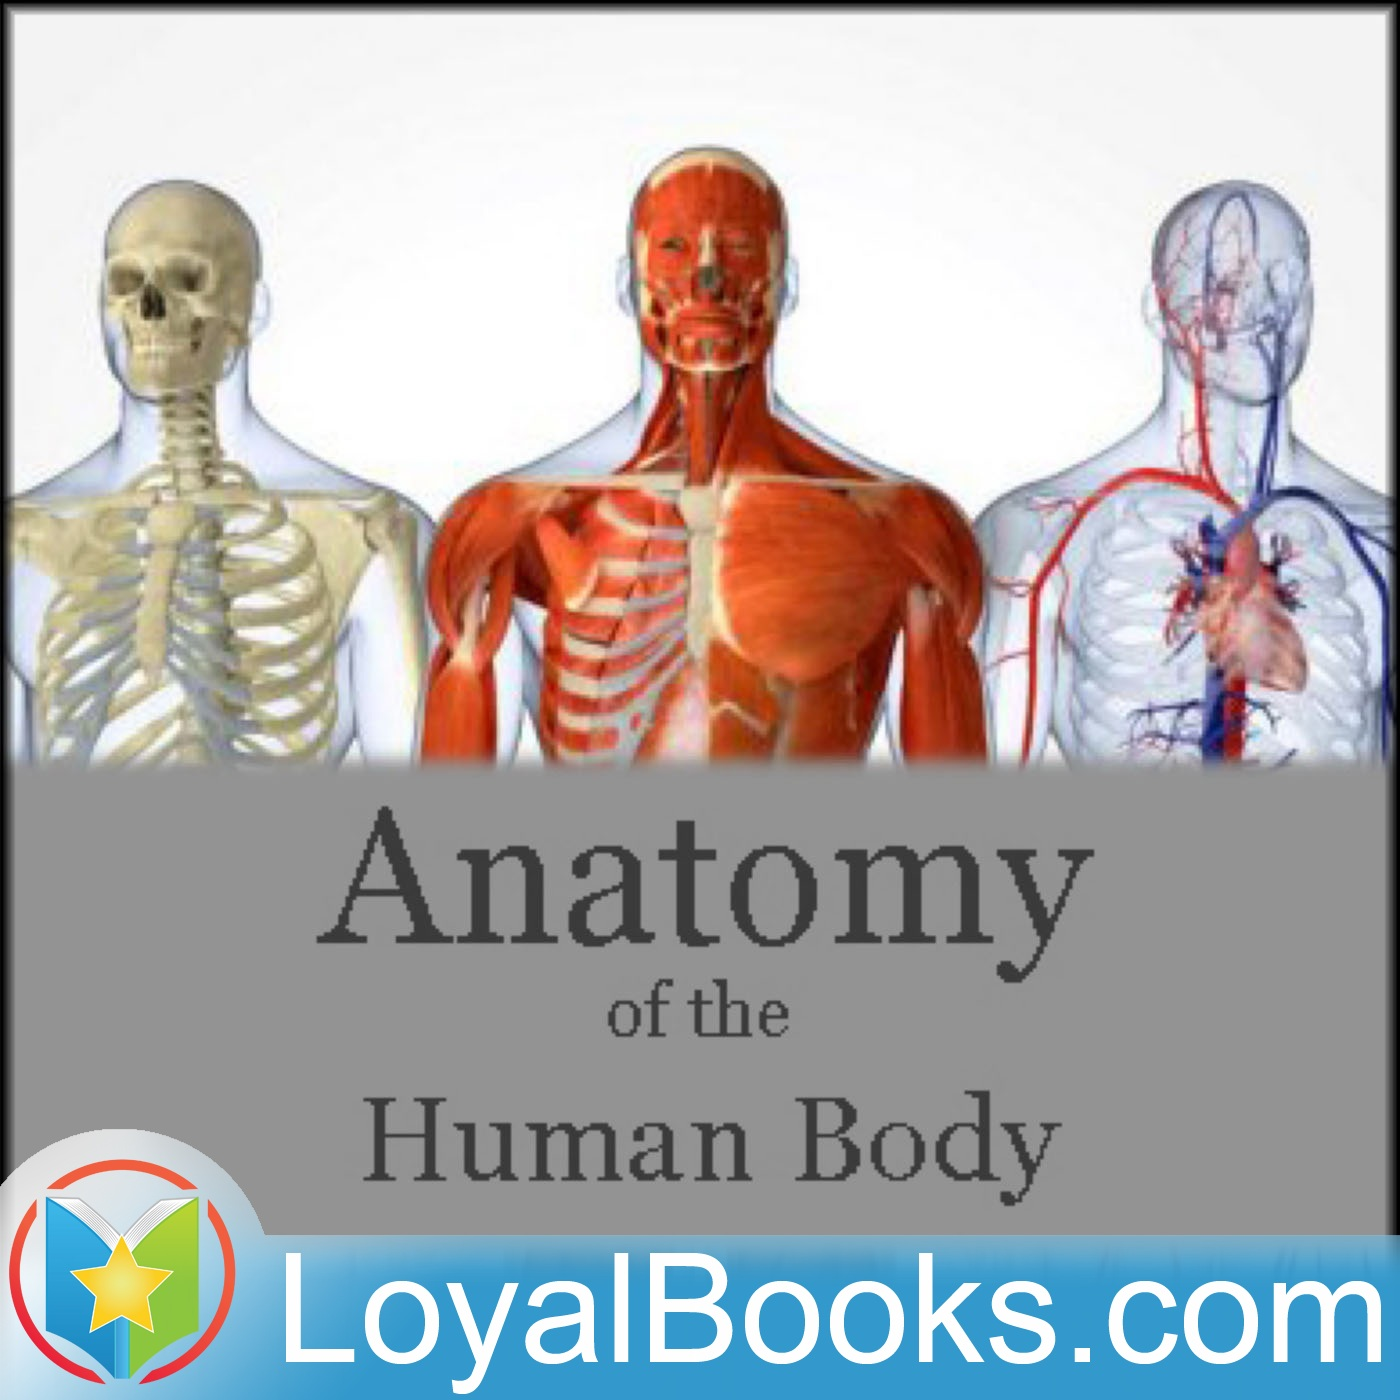 Anatomy Of The Human Body By Henry Gray By Books Should Be Free On